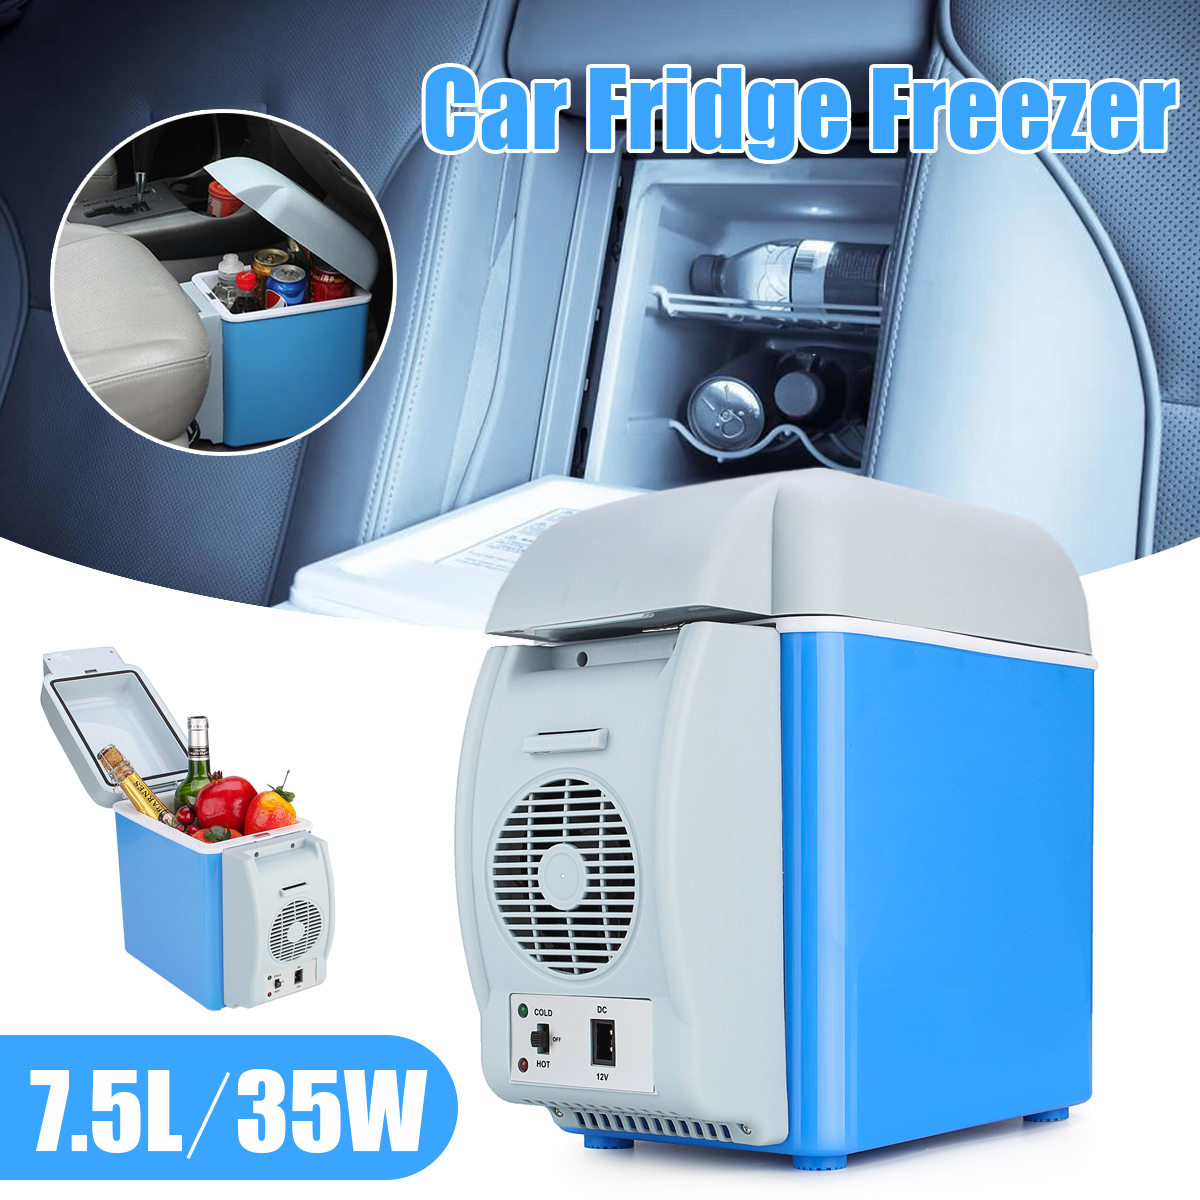 New 12V 7.5L 35W Mini Portable Car Refrigerator Cooler Freezer Car Fridge Freezer Cooler Warmer 2 Modes Box Fridge Travel Boat 60l lpg gas refrigerator fridge mini portable propane electric ac110v 220v dc12v reversible door caravan cooler for car rv boat